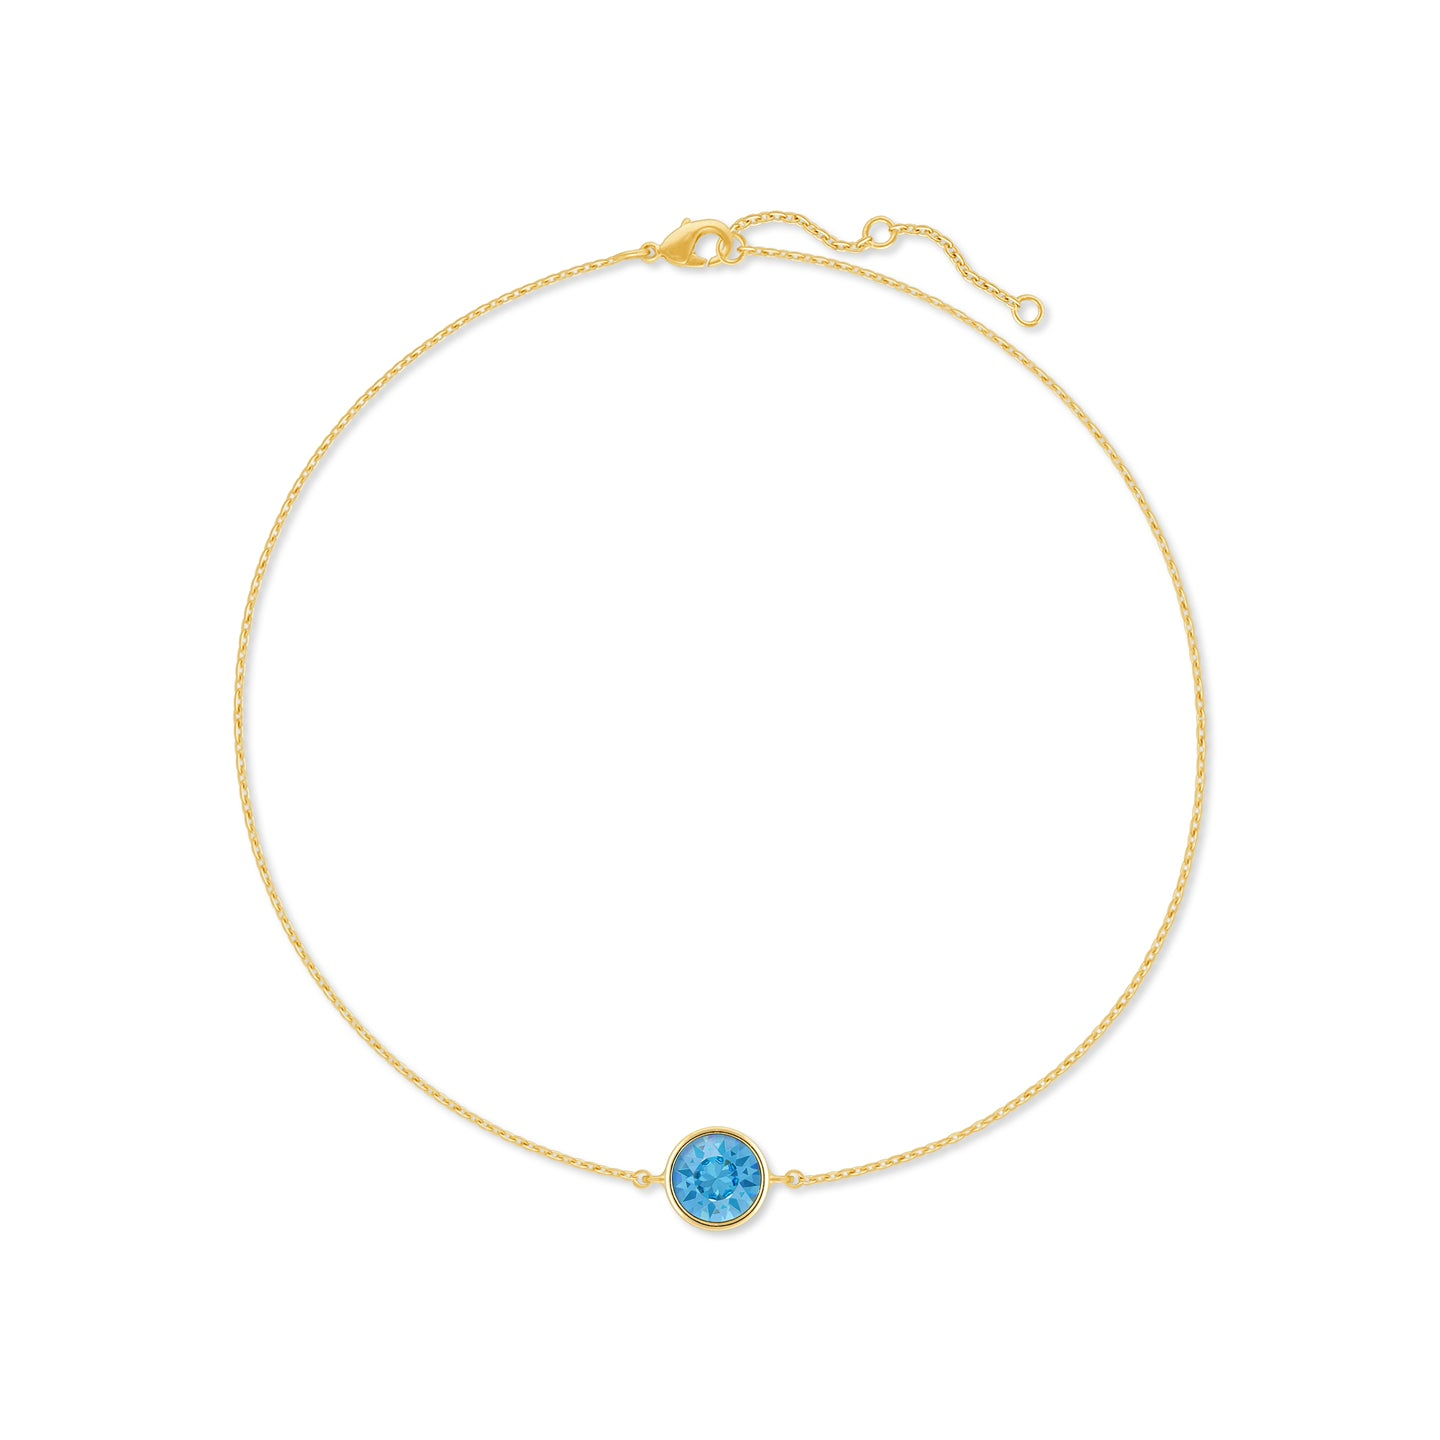 Harley Chain Bracelet with Blue Aquamarine Round Crystals from Swarovski Gold Plated - Ed Heart